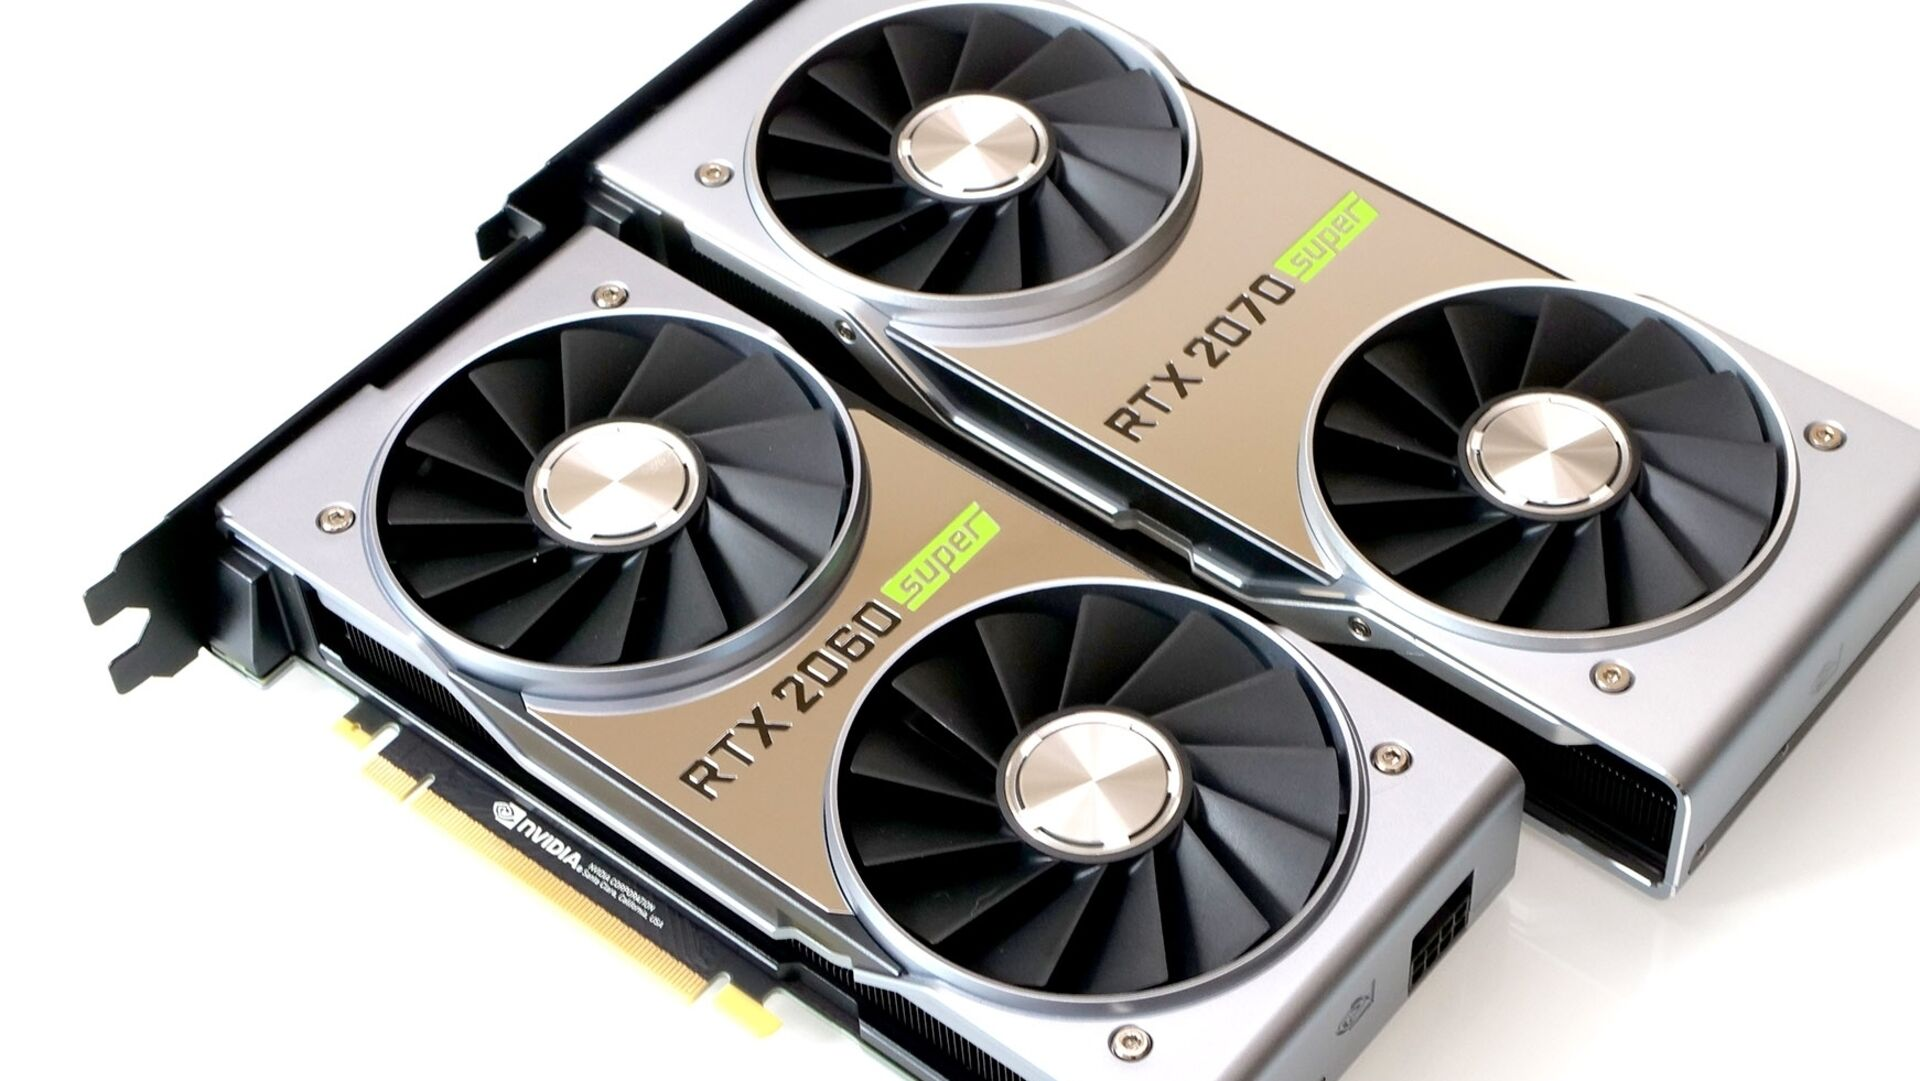 Nvidia GeForce RTX 2060 Super / RTX 2070 Super review: timely